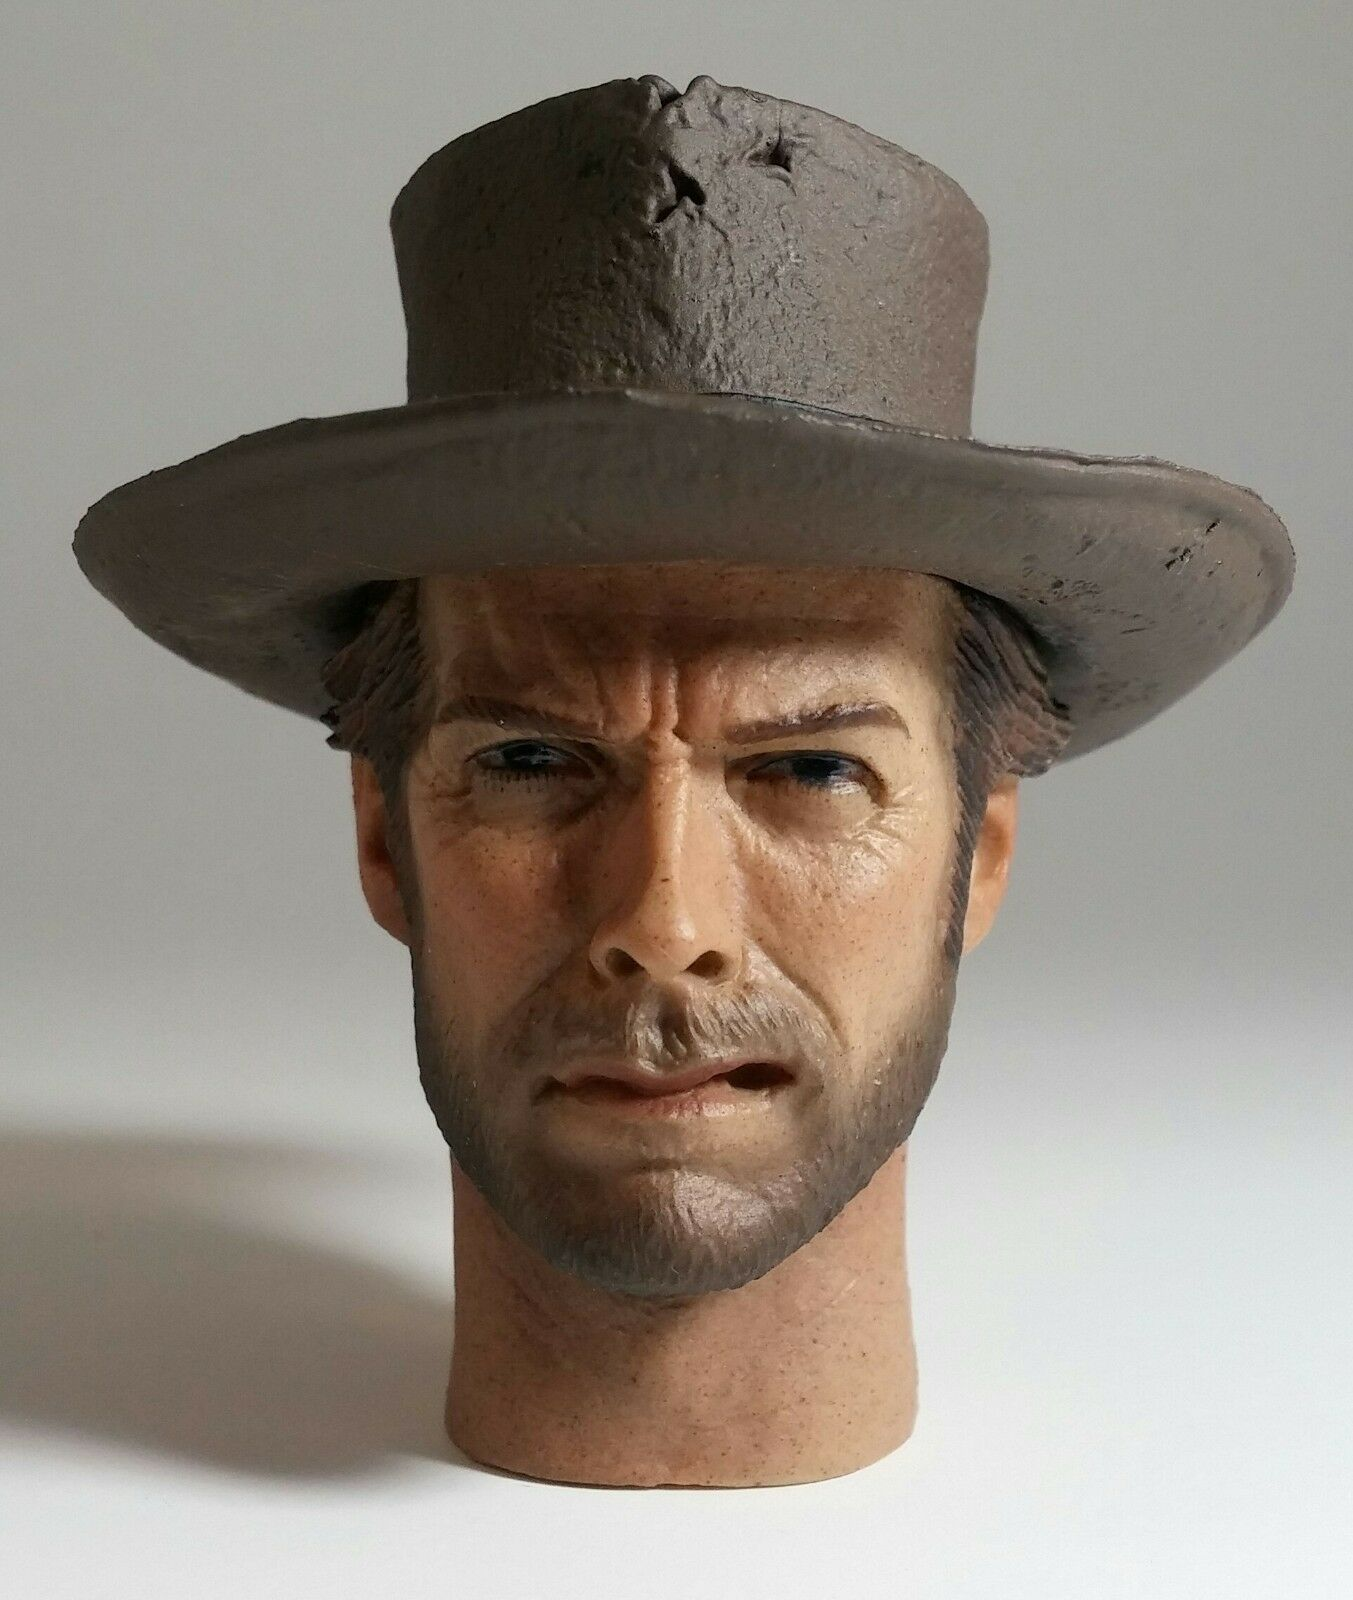 Redman the good head sculpt with hat 1 6 toys Cowboy Western